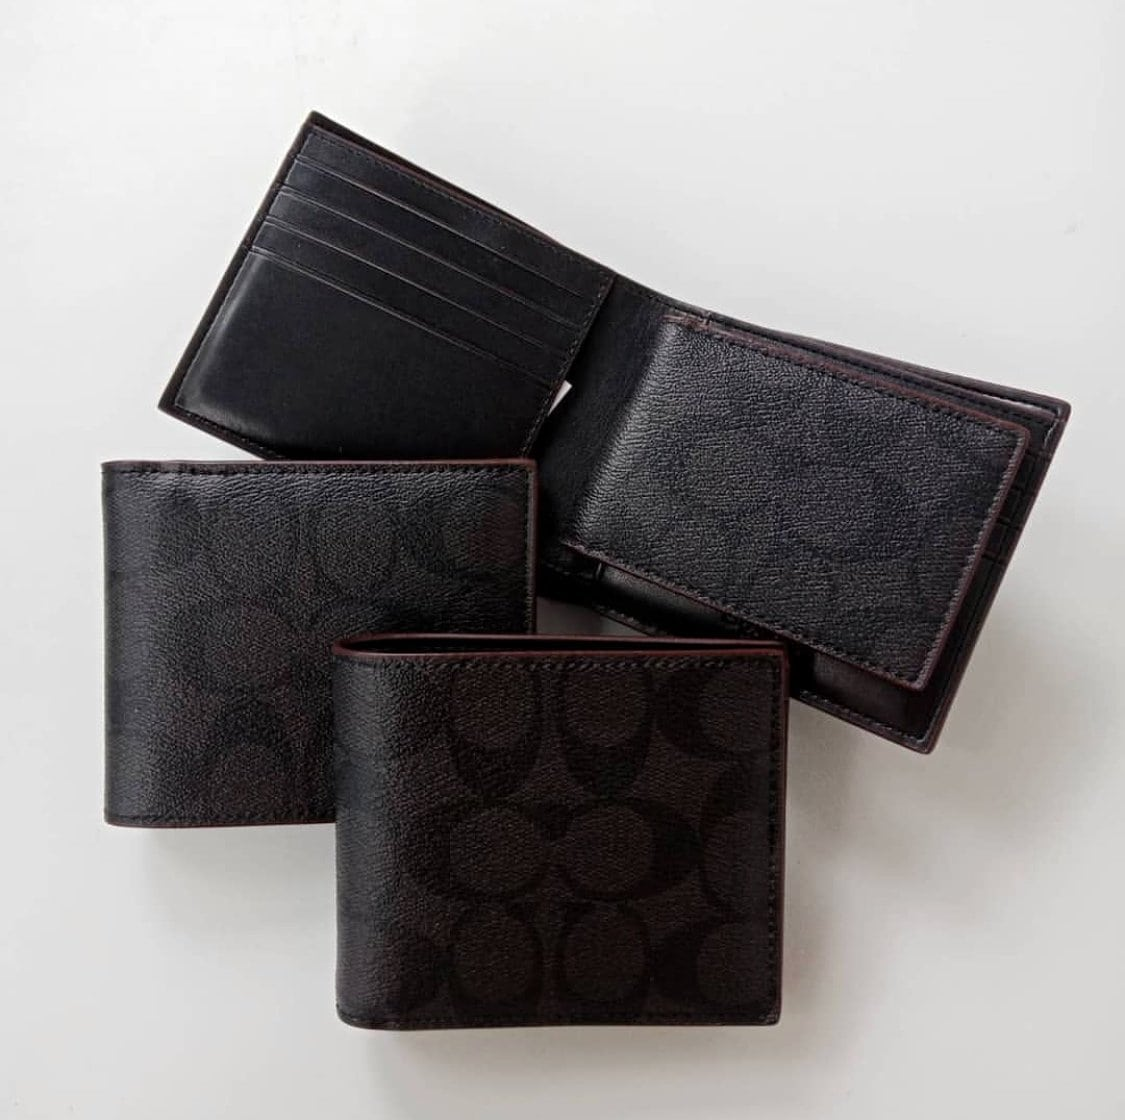 COACH SIGNATURE COMPACT ID PVC MEN WALLET - LovelyMadness Clothing Online Fashion Malaysia